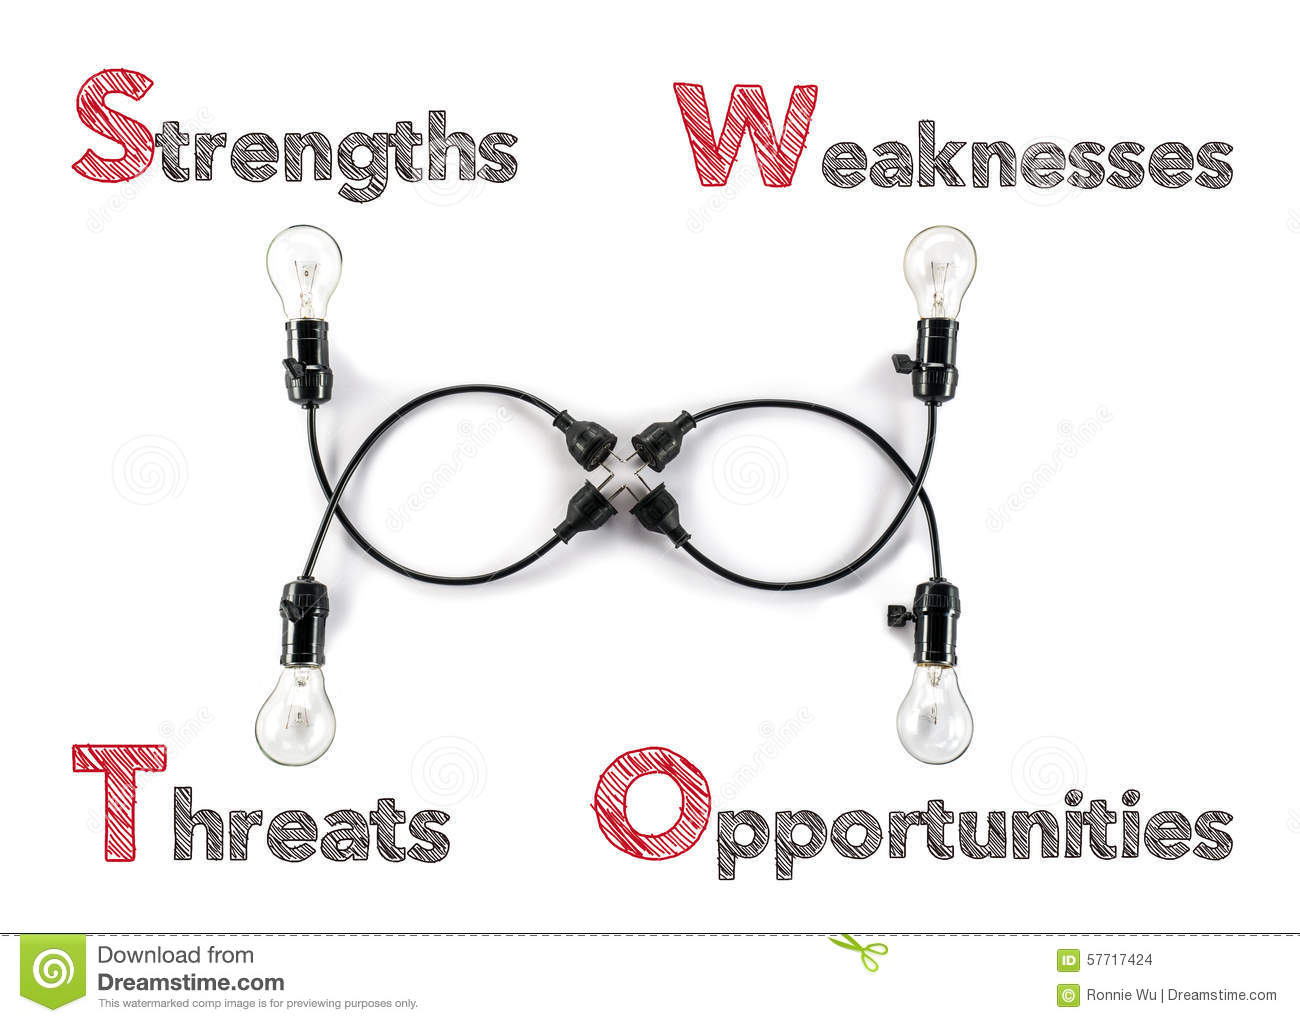 Strengths And Weaknesses Keywords submited images